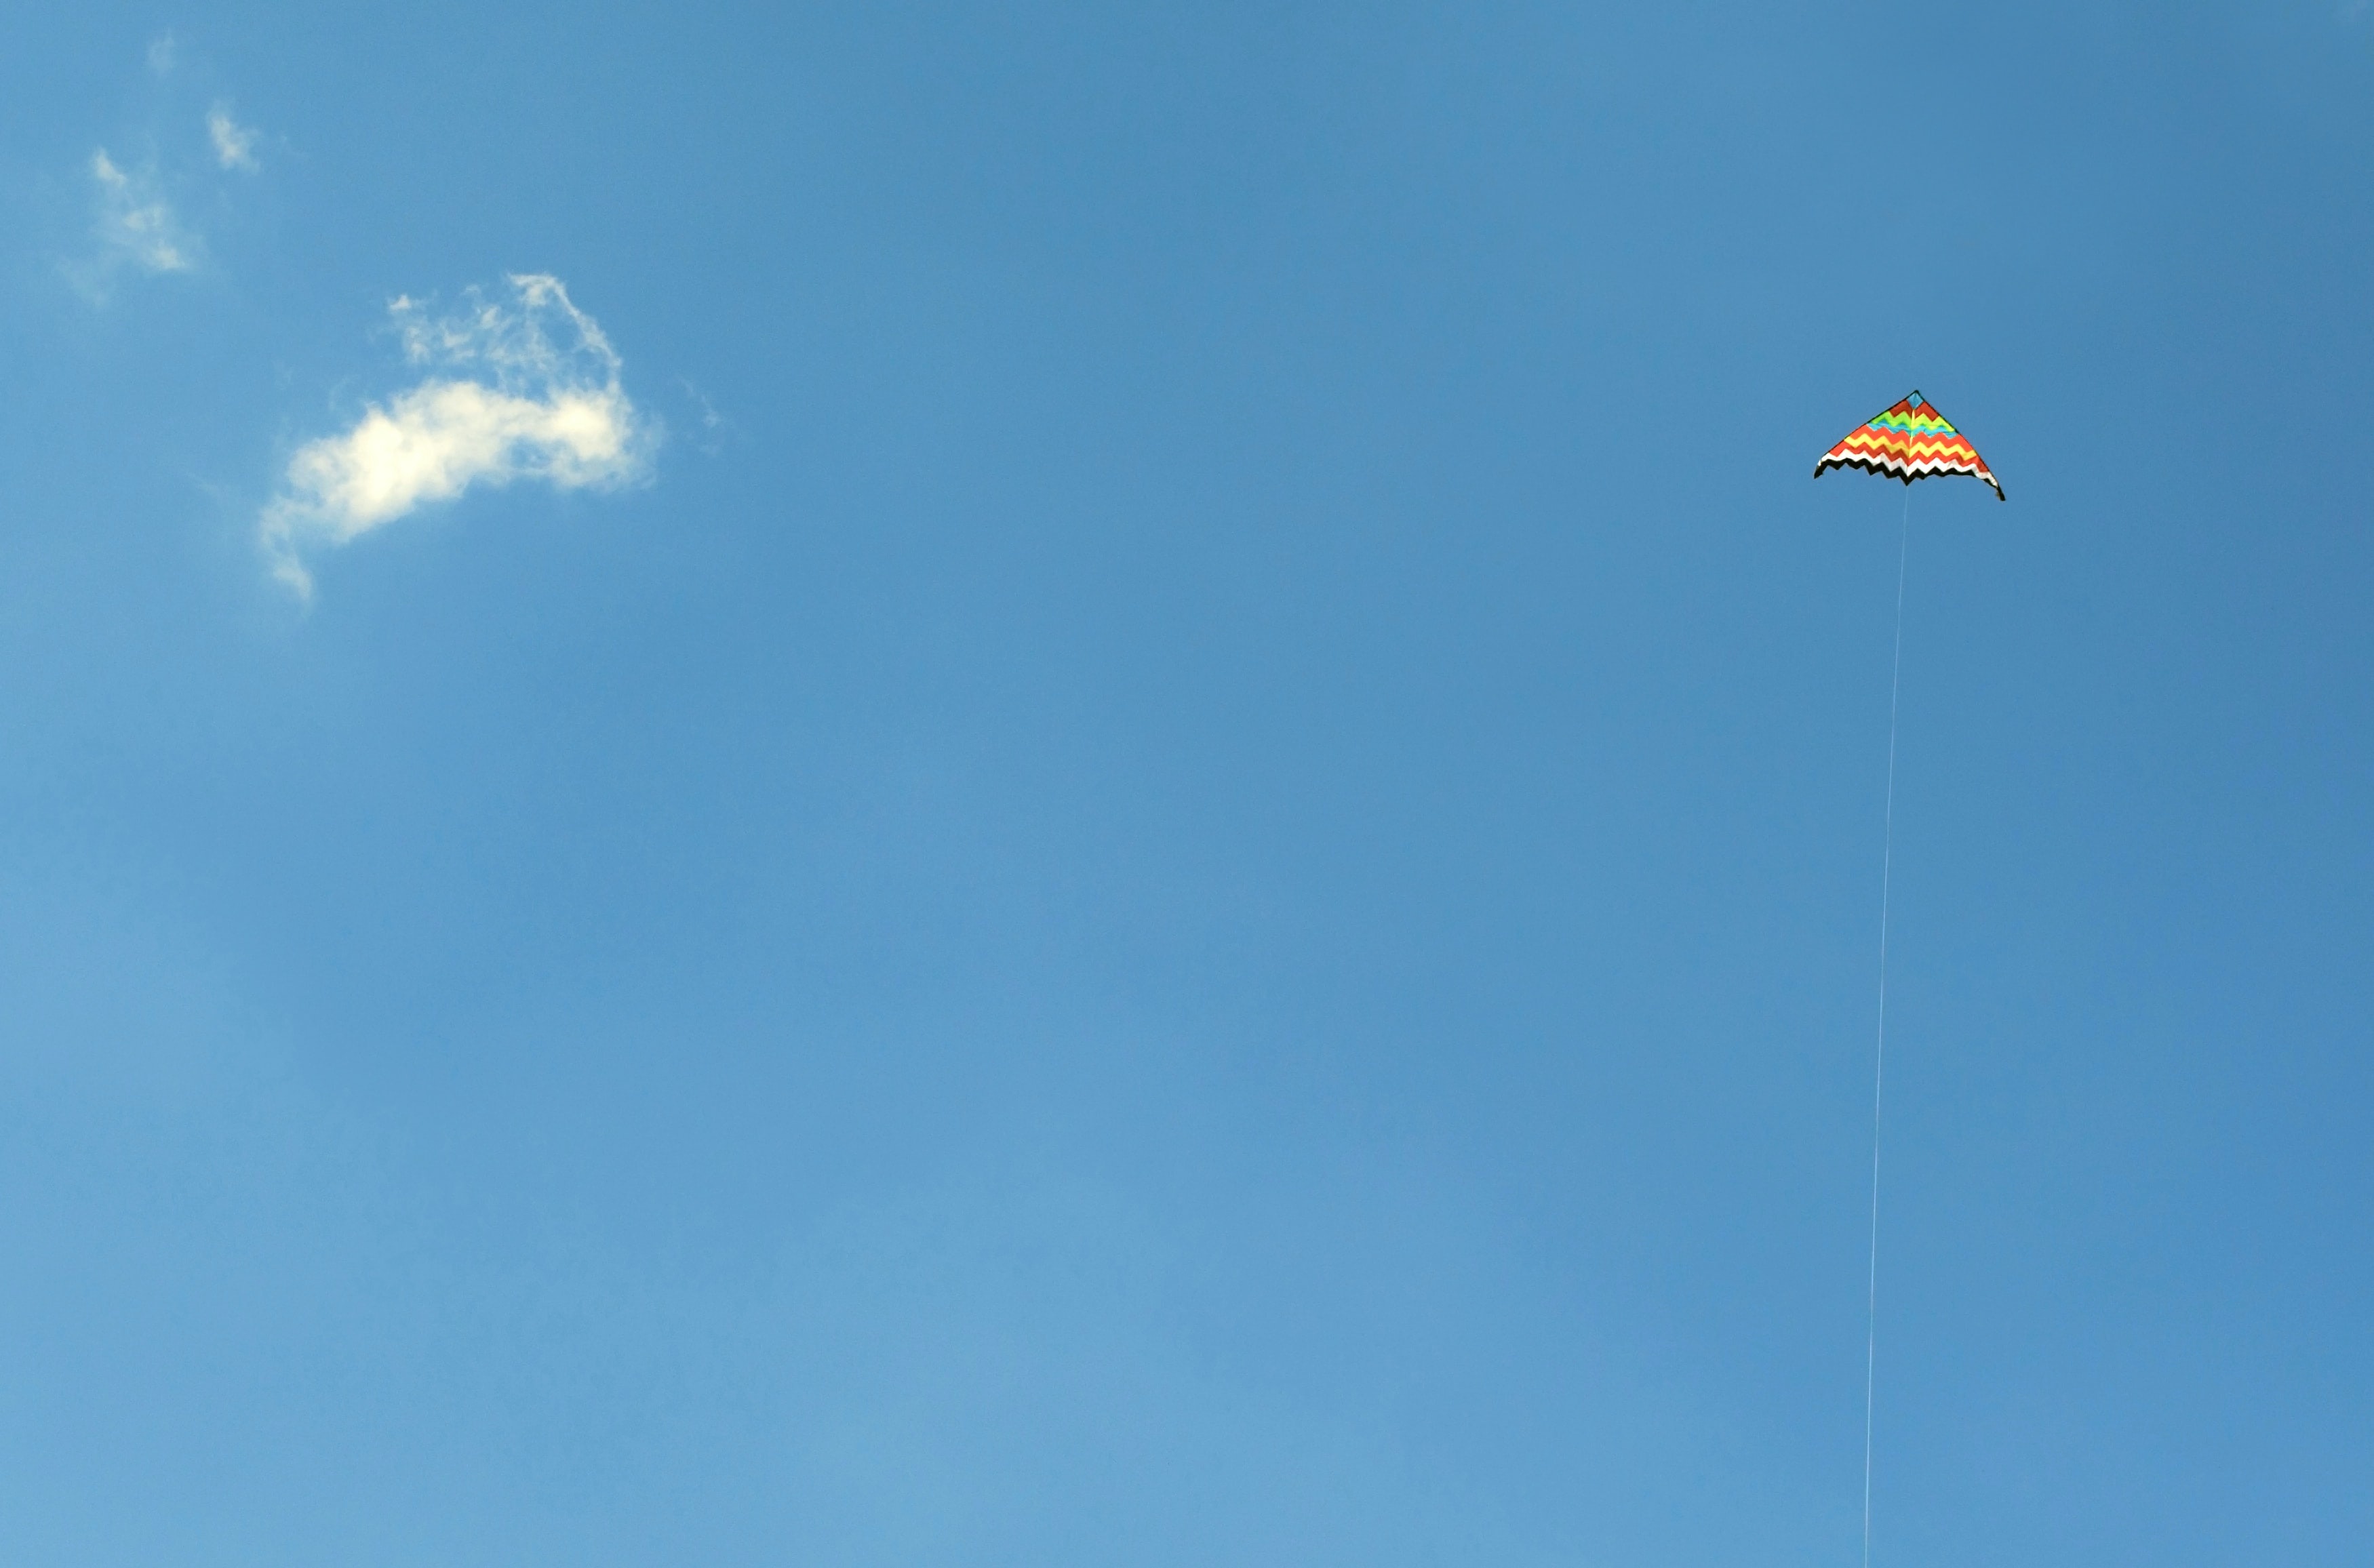 orange and green kite in the sky soaring at daytime